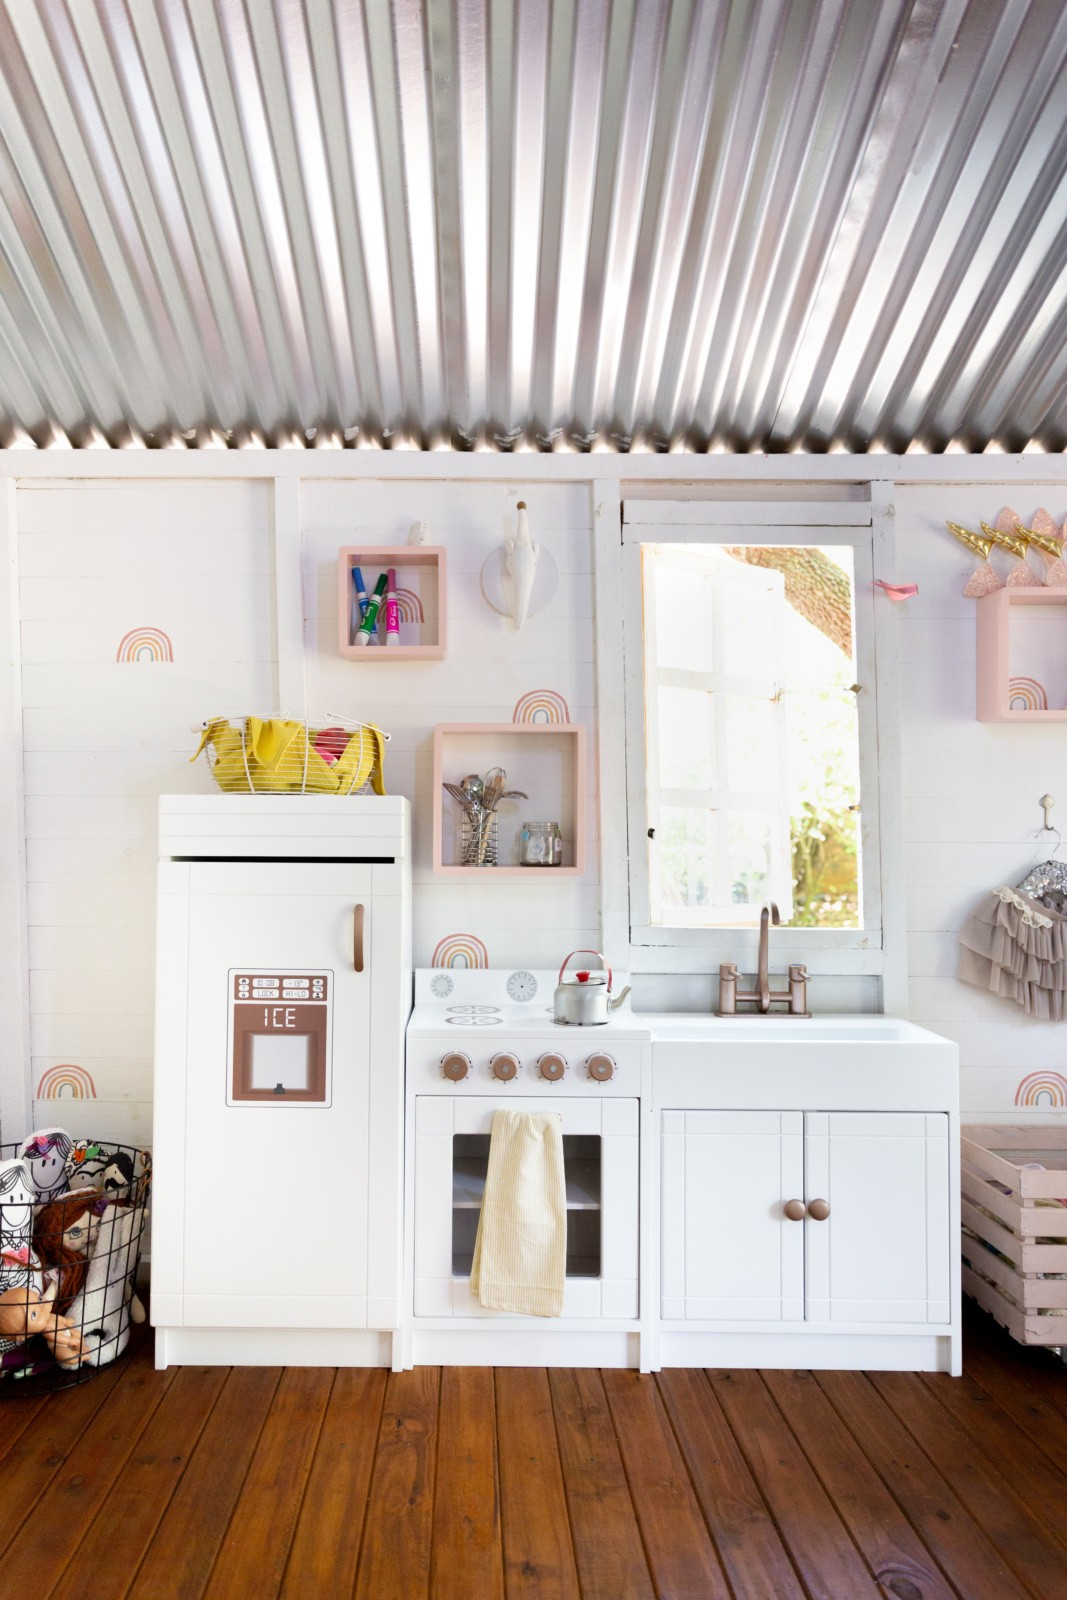 Lil Peanut Wooden Kitchens South Africa Just A Mamma Blog 8616